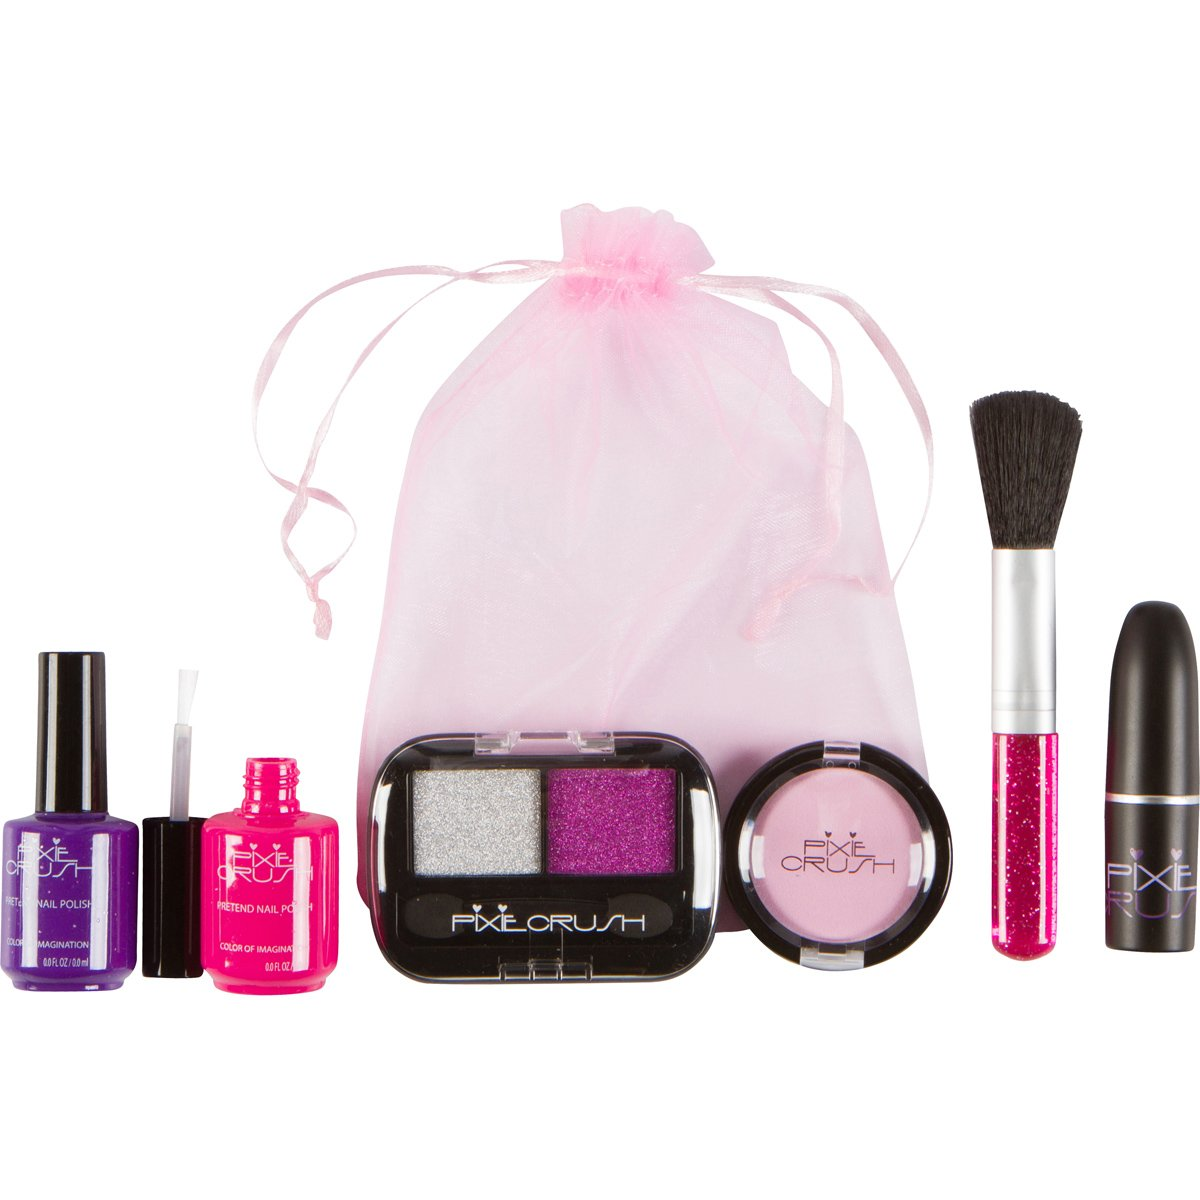 Children Lovely Beauty Plastic Makeup Comestics Kit Eye Shadow Neither Too Hard Nor Too Soft Beauty Essentials